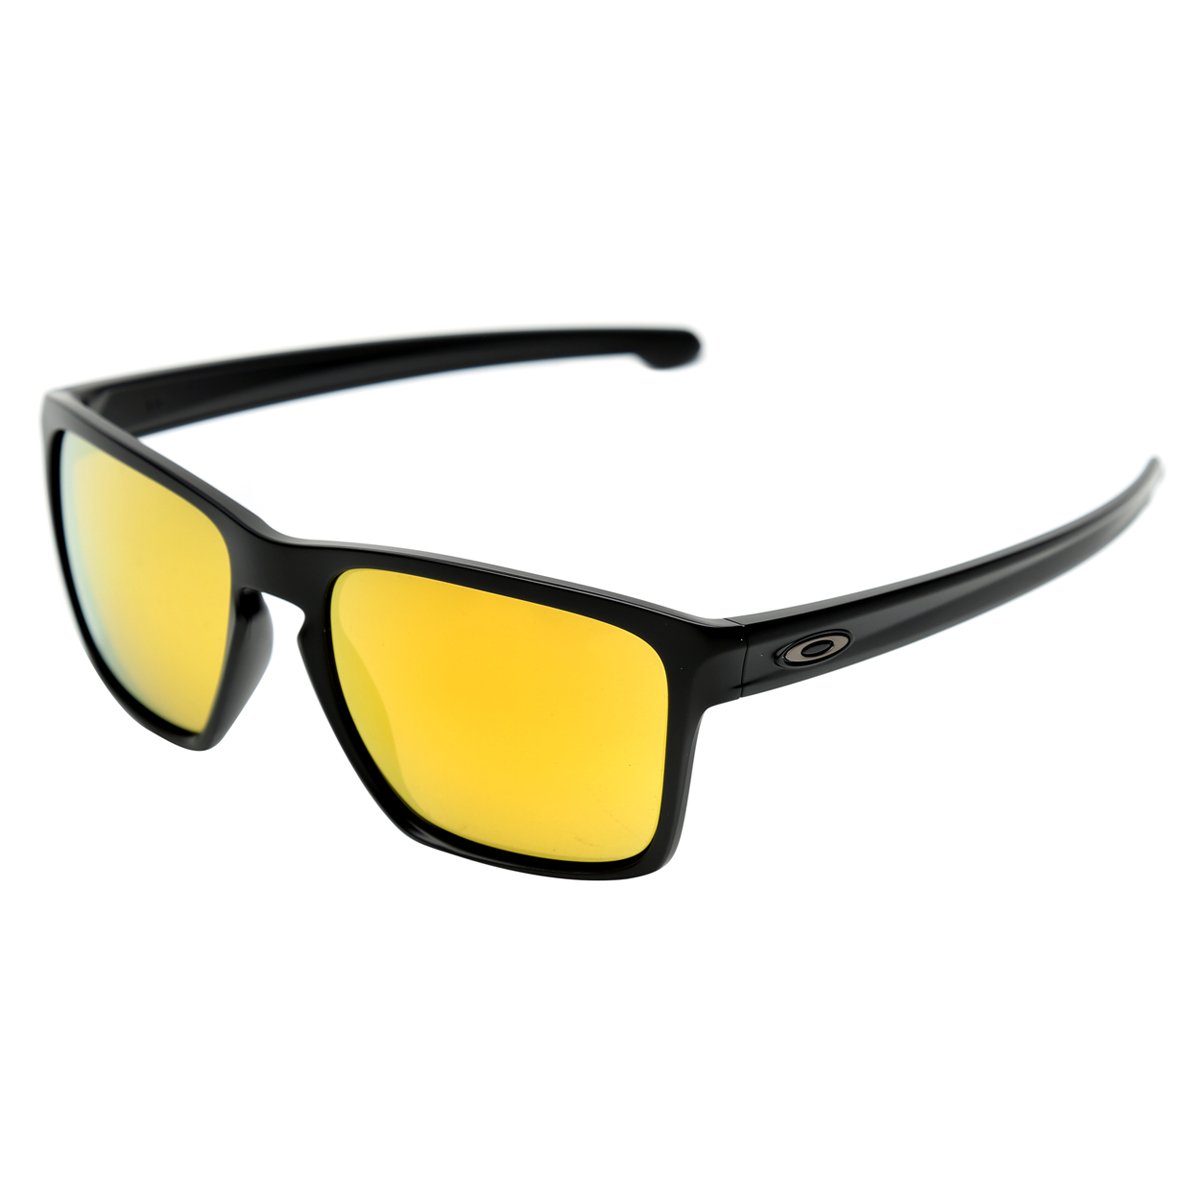 f5d10b2f5 Oculos Oakley Feminino Dourado – Southern California Weather Force